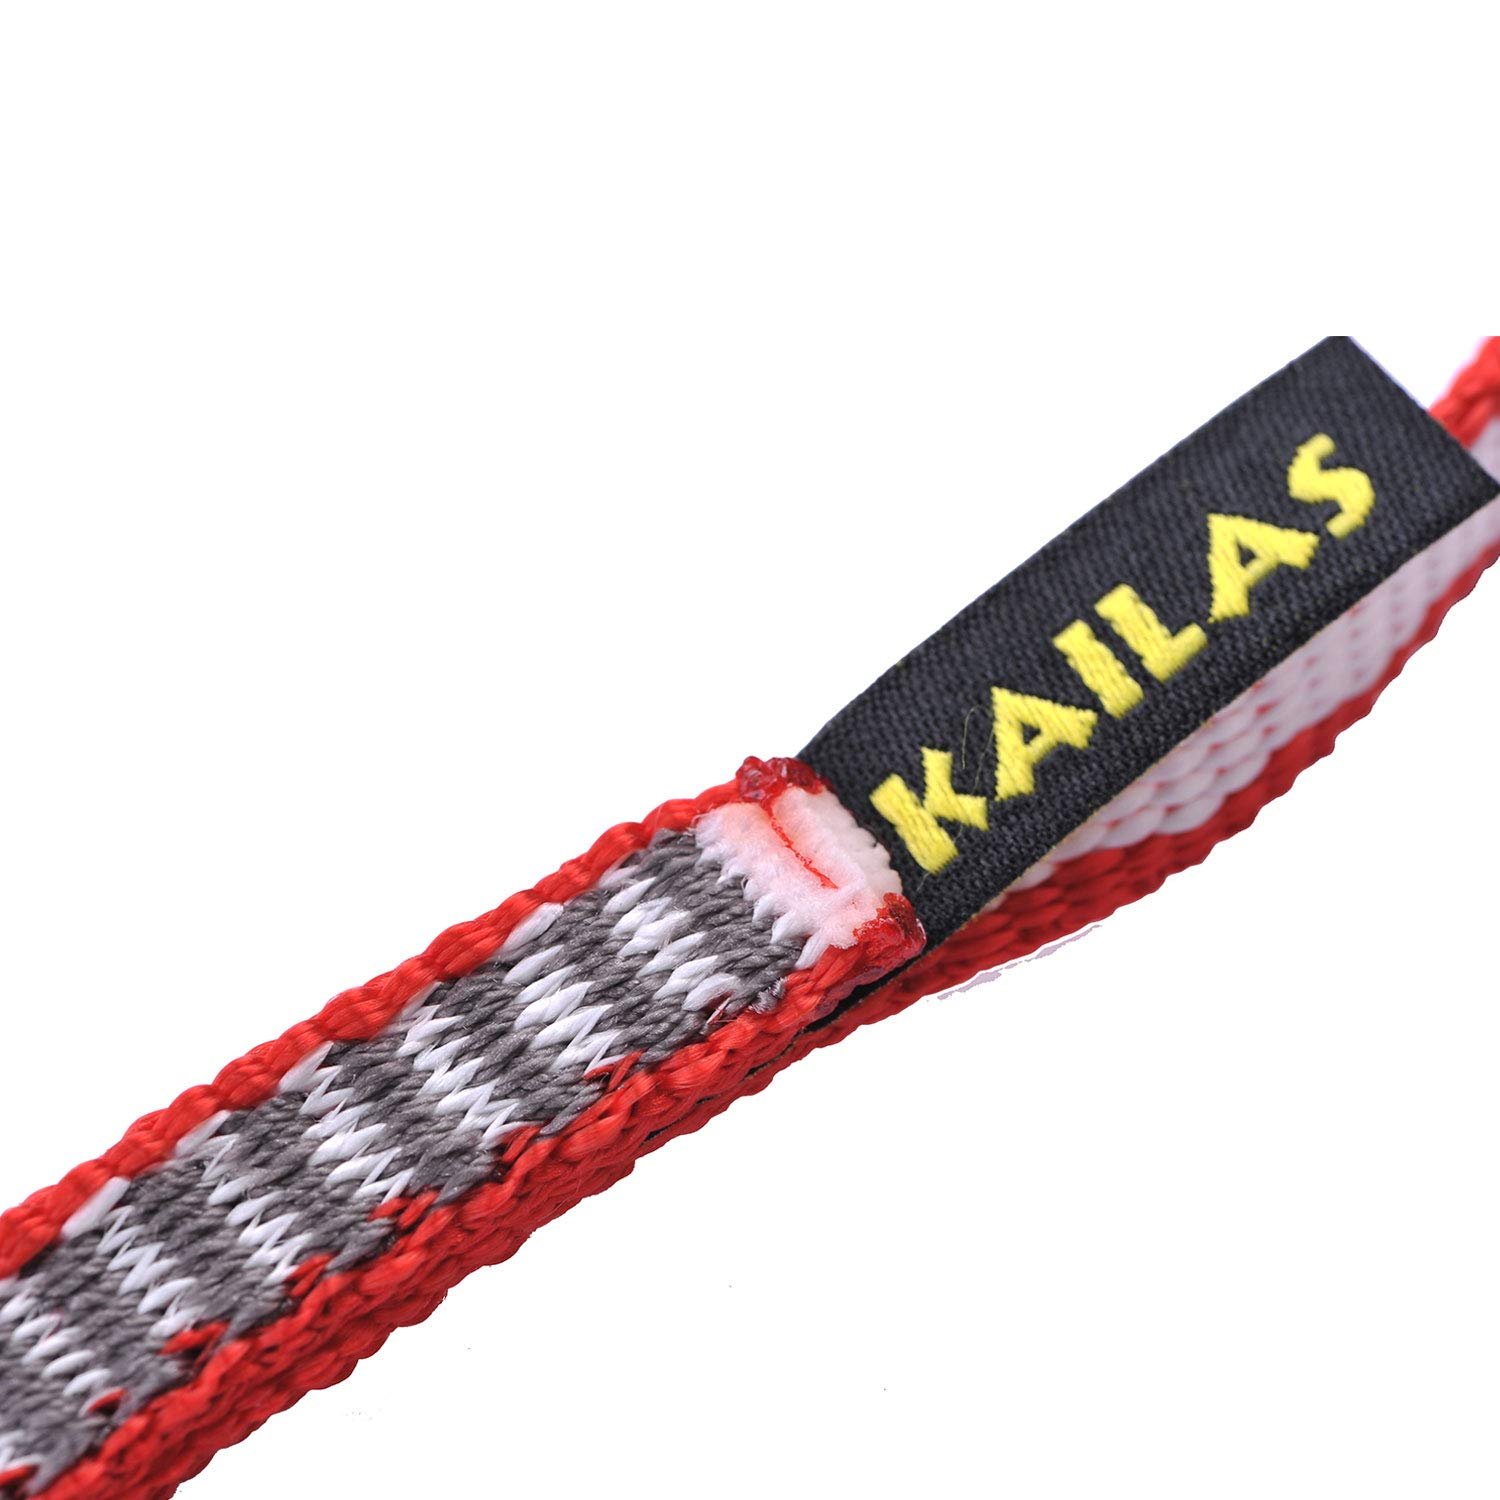 Rescue Work at Height KAILAS Dyneema Ultra-Light Sling for Climbing